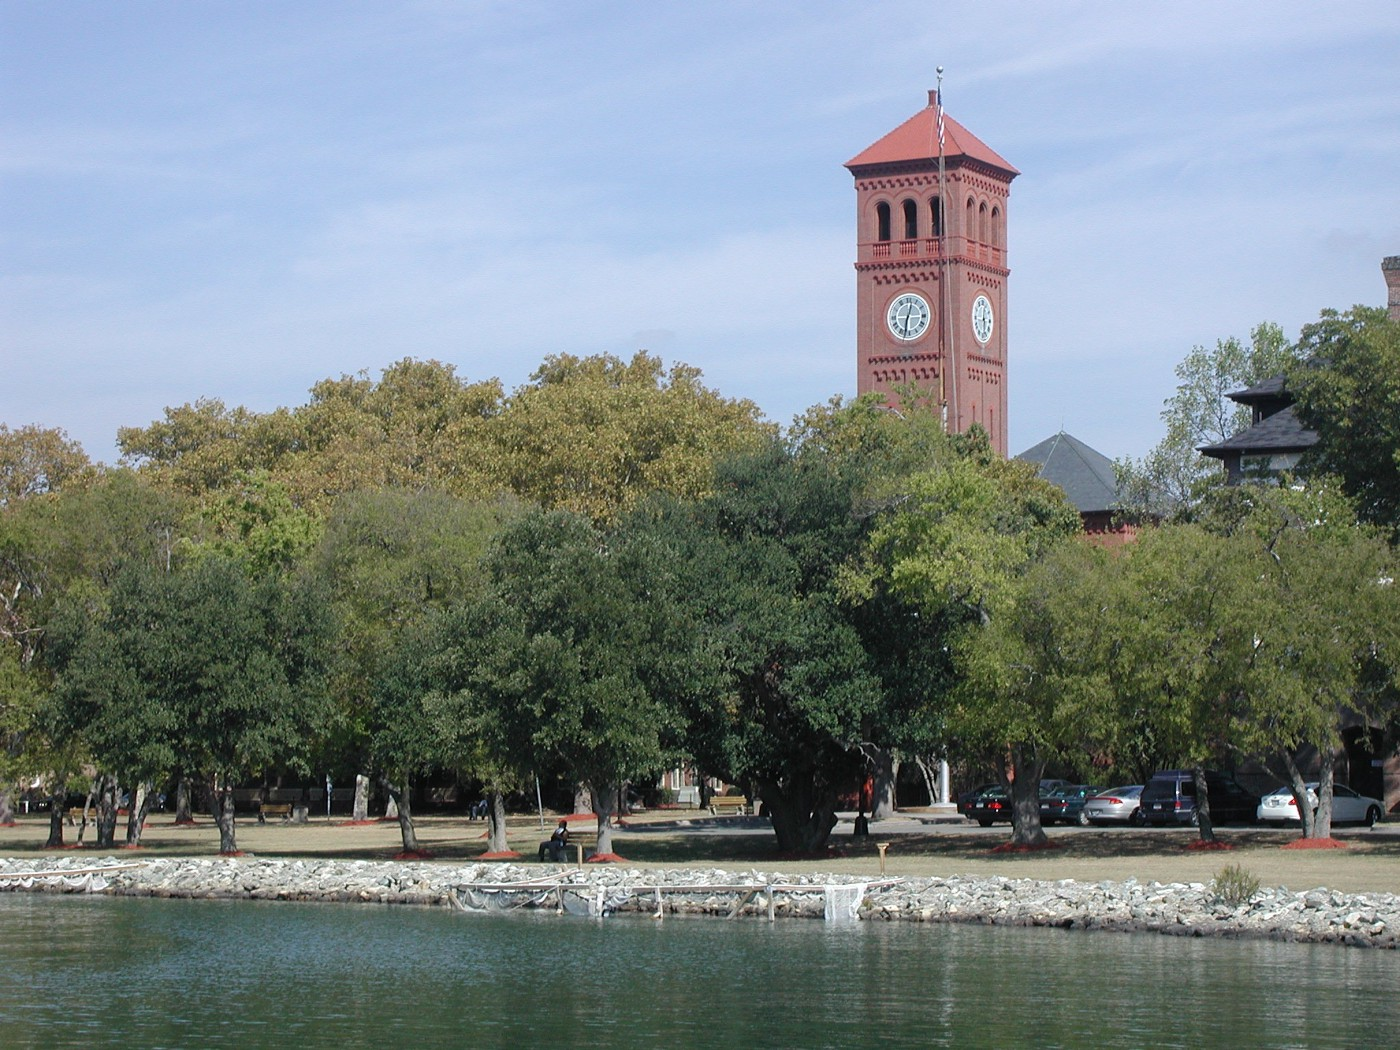 Clock tower and green trees on the waterfront